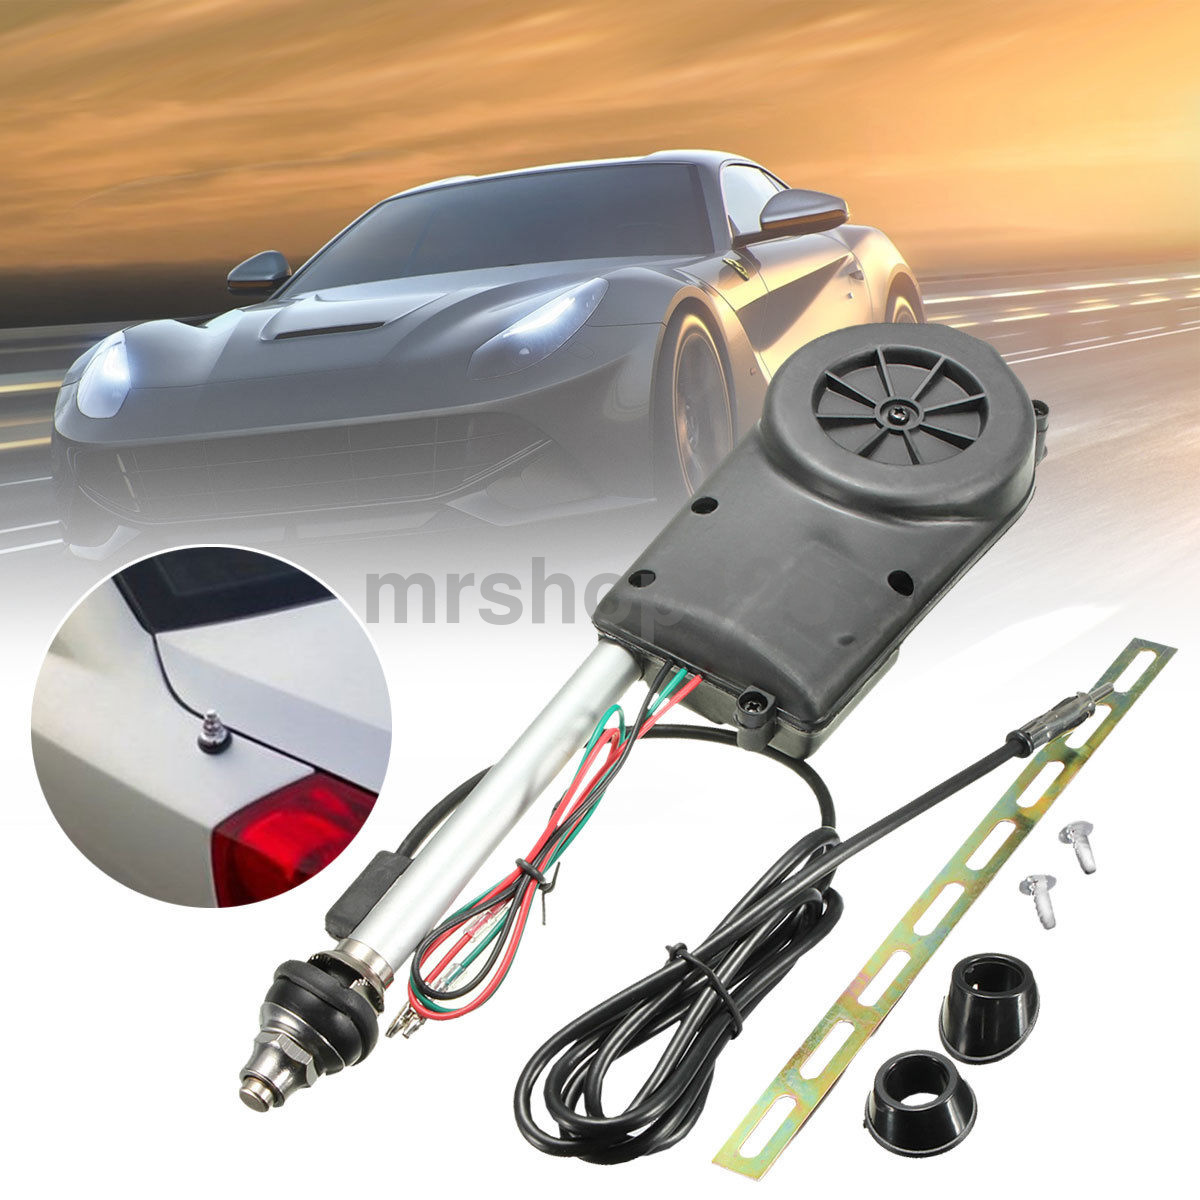 Power Antenna Replacement 40v Electric Car Radio Kit Fit ...